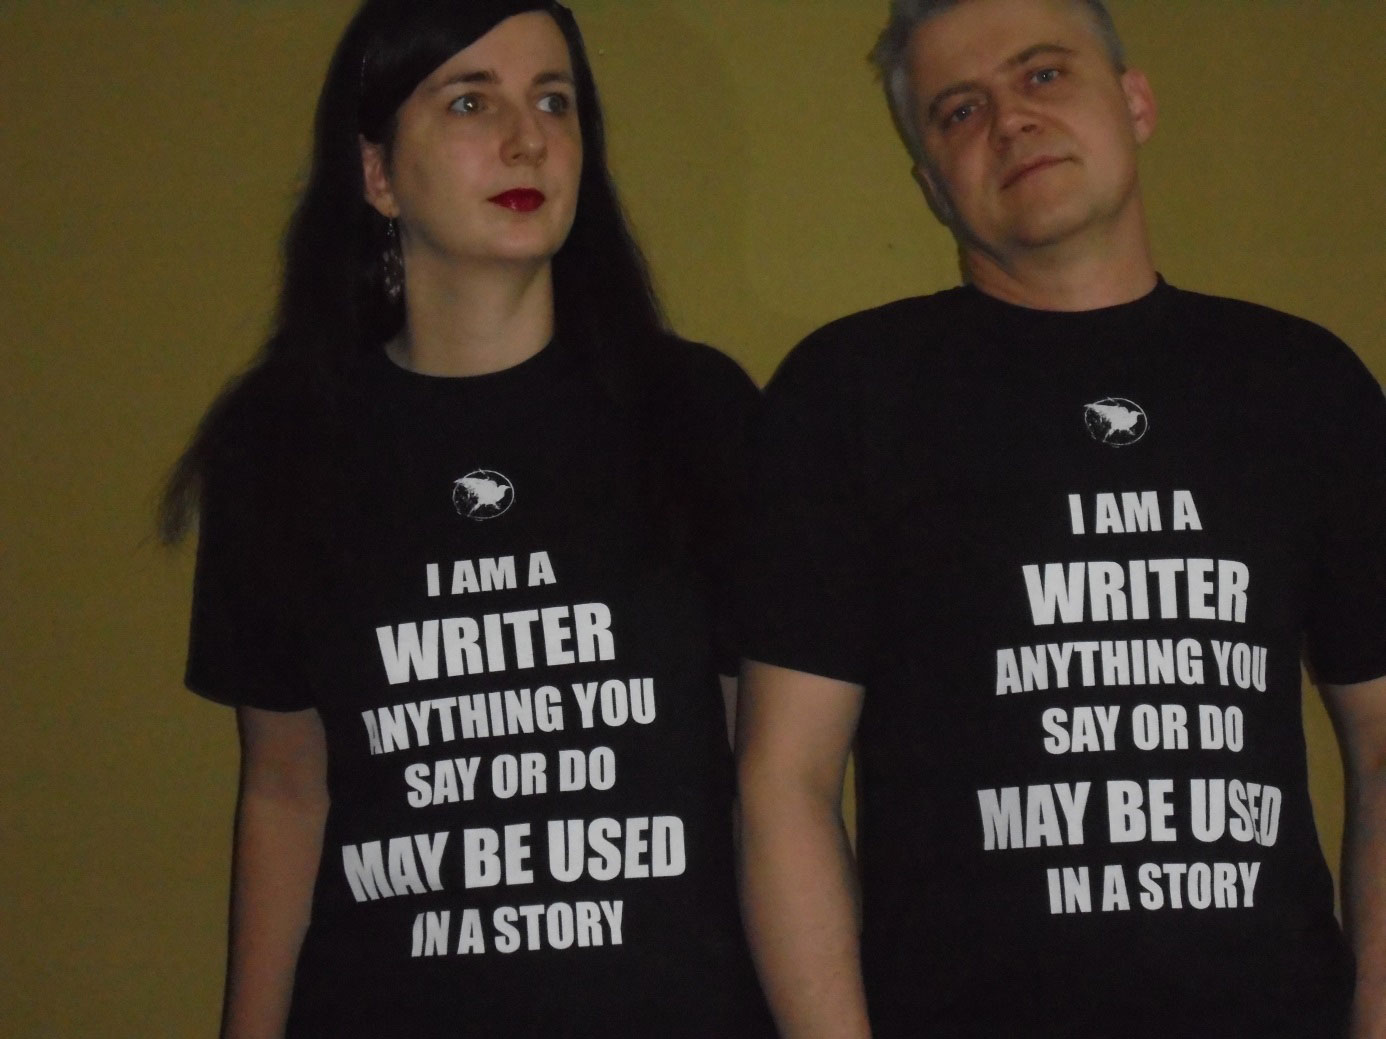 Foto: Jennifer Sonntag mitt Buchpartner, beide mit Shirtspruch: I am a writer anythink you say or do may be used in a Story